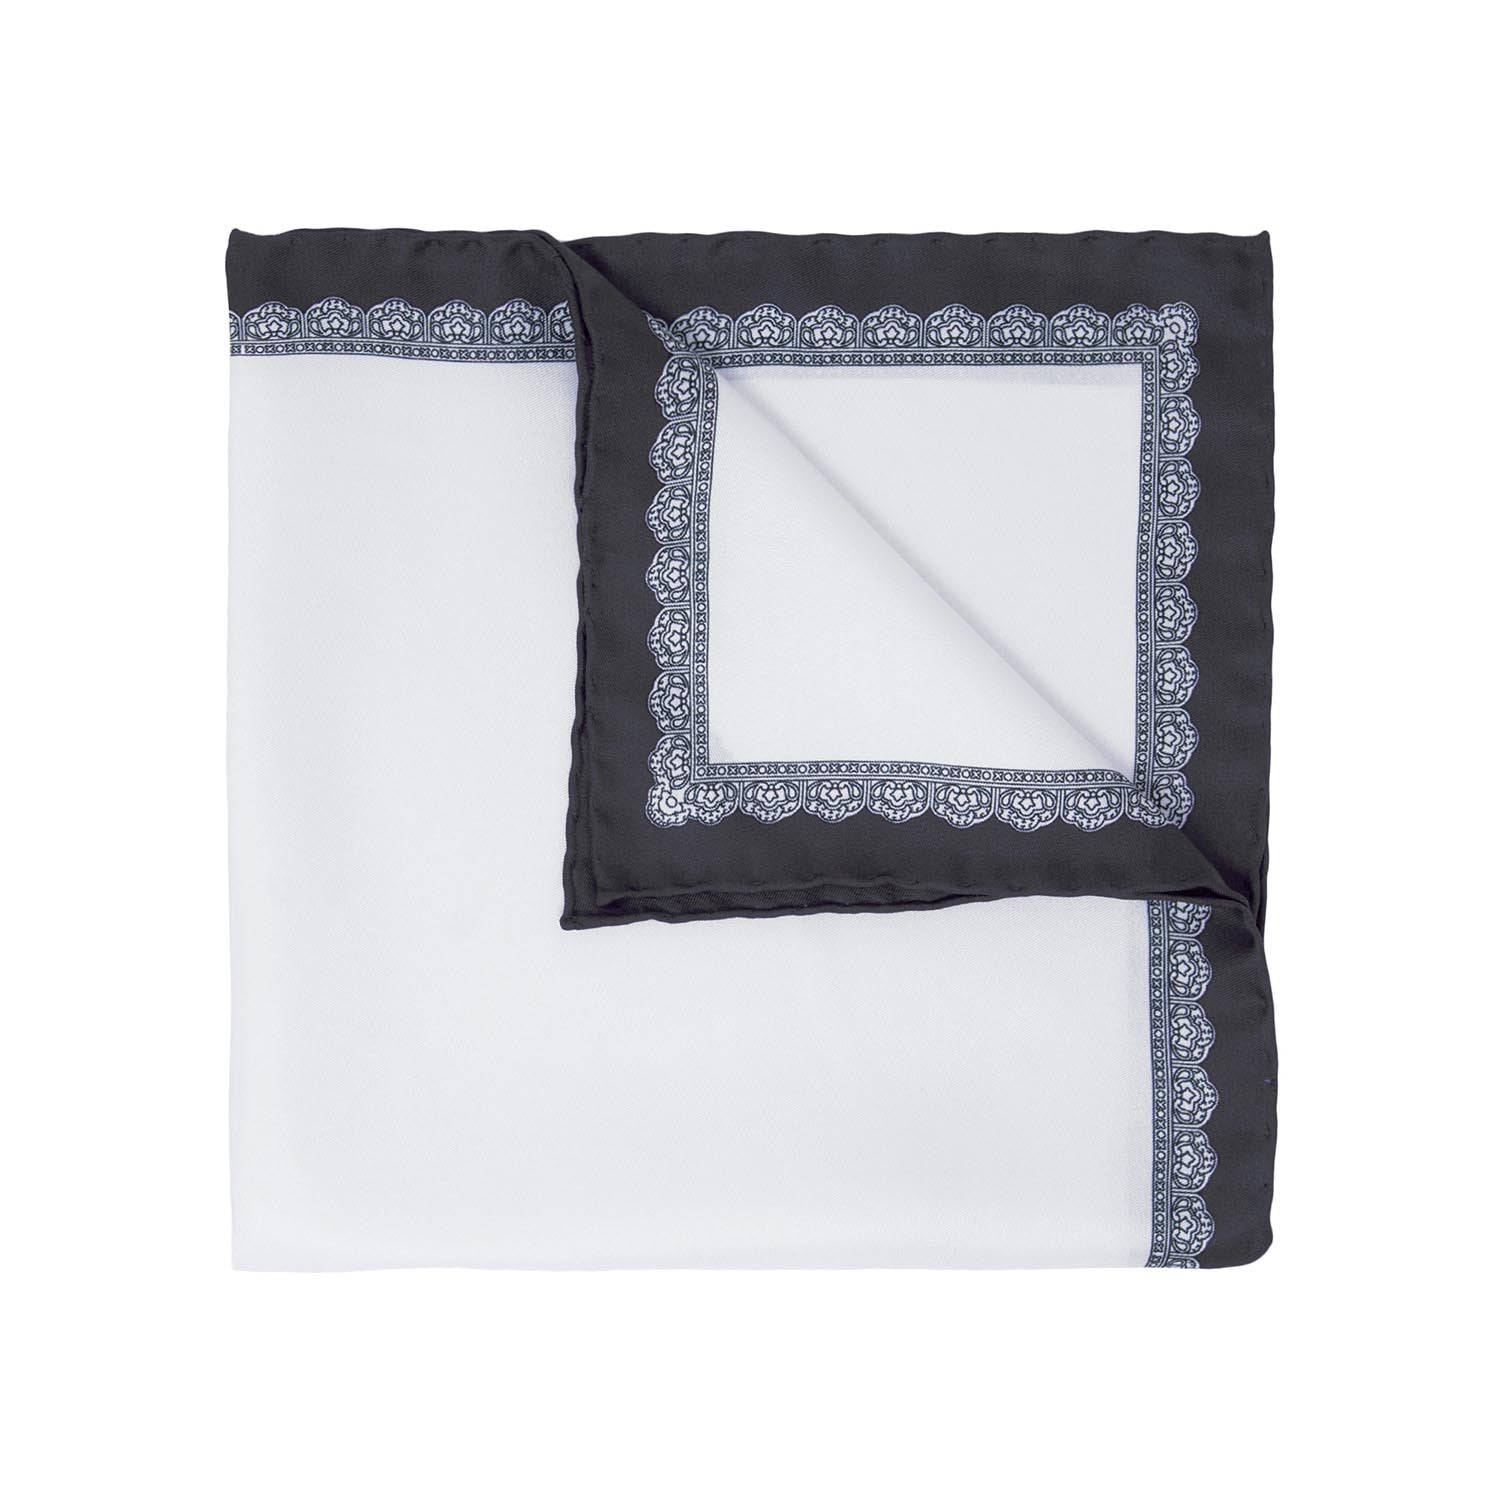 serà fine silk pocket square - Dark Grey Essential